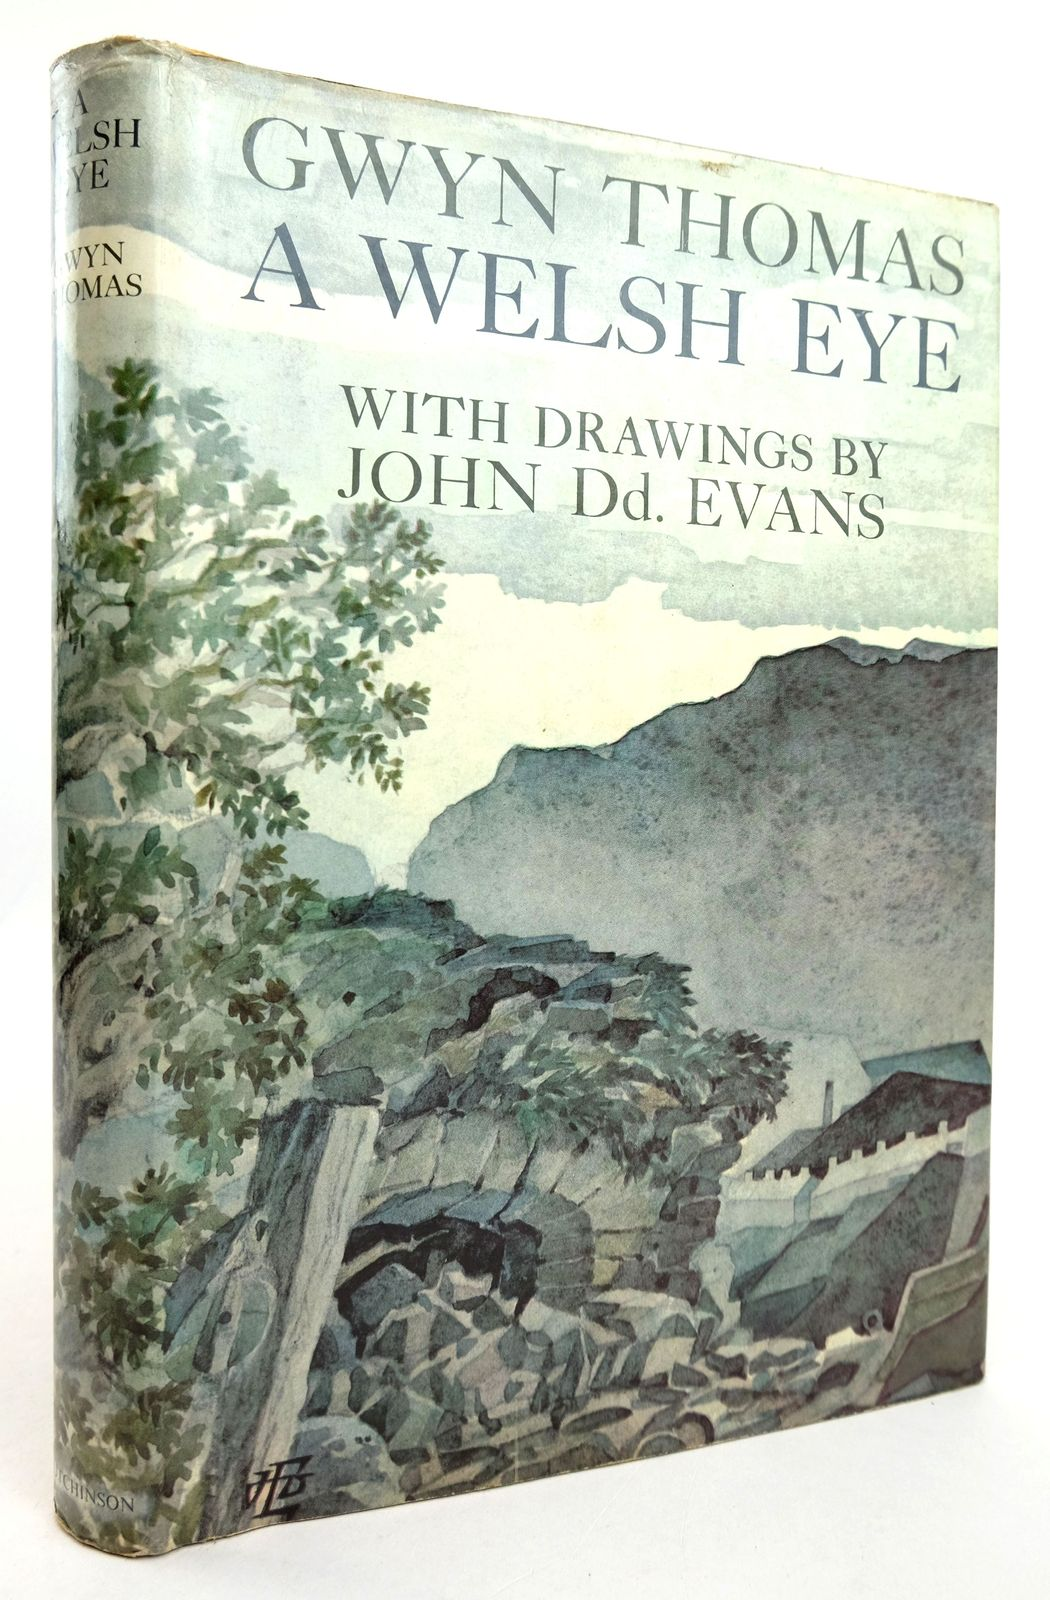 Photo of A WELSH EYE written by Thomas, Gwyn illustrated by Evans, John Dd. published by Hutchinson (STOCK CODE: 1819186)  for sale by Stella & Rose's Books